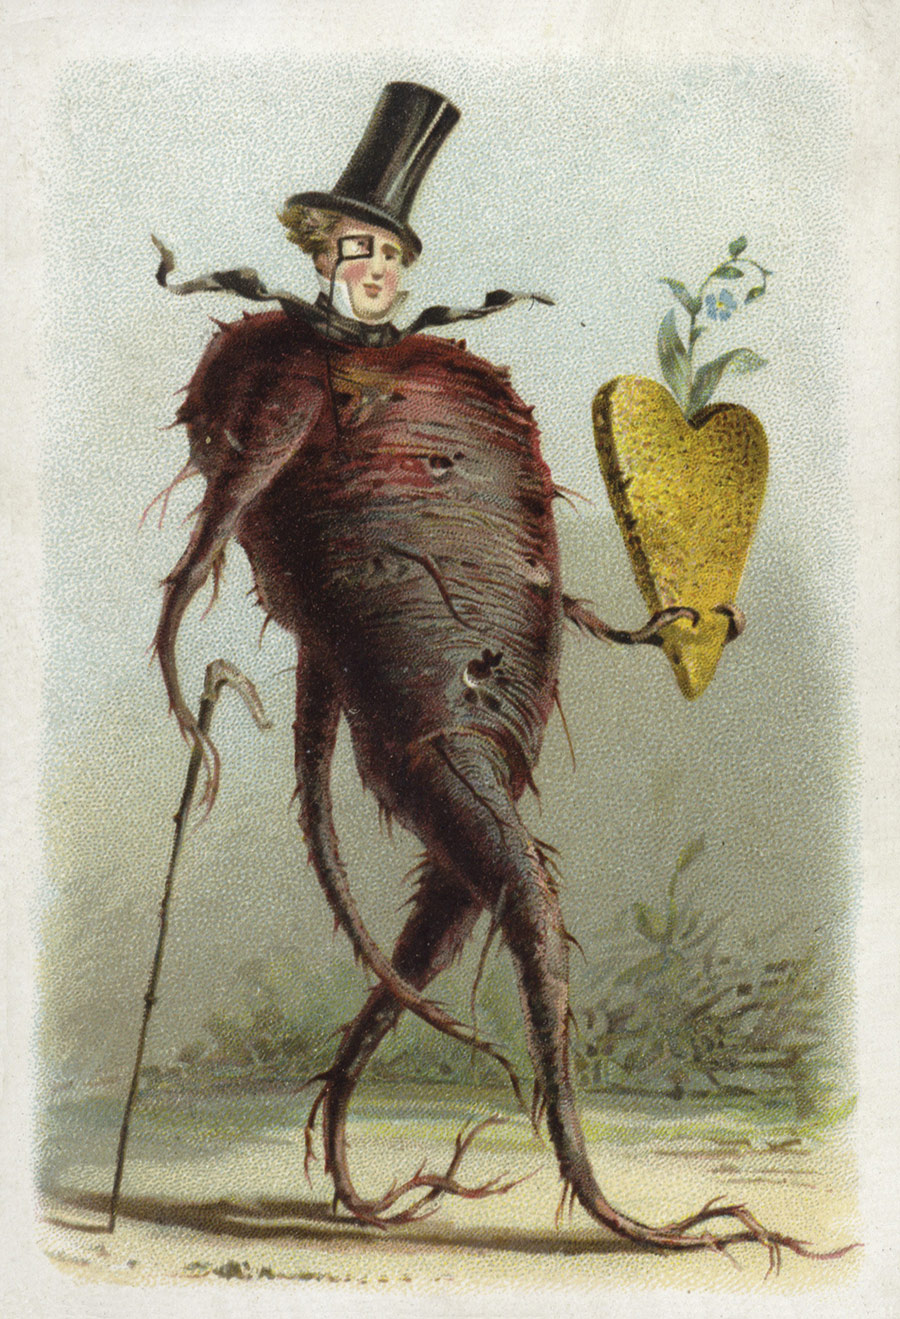 'Beetroot', as depicted in a 19th-century French educational card.